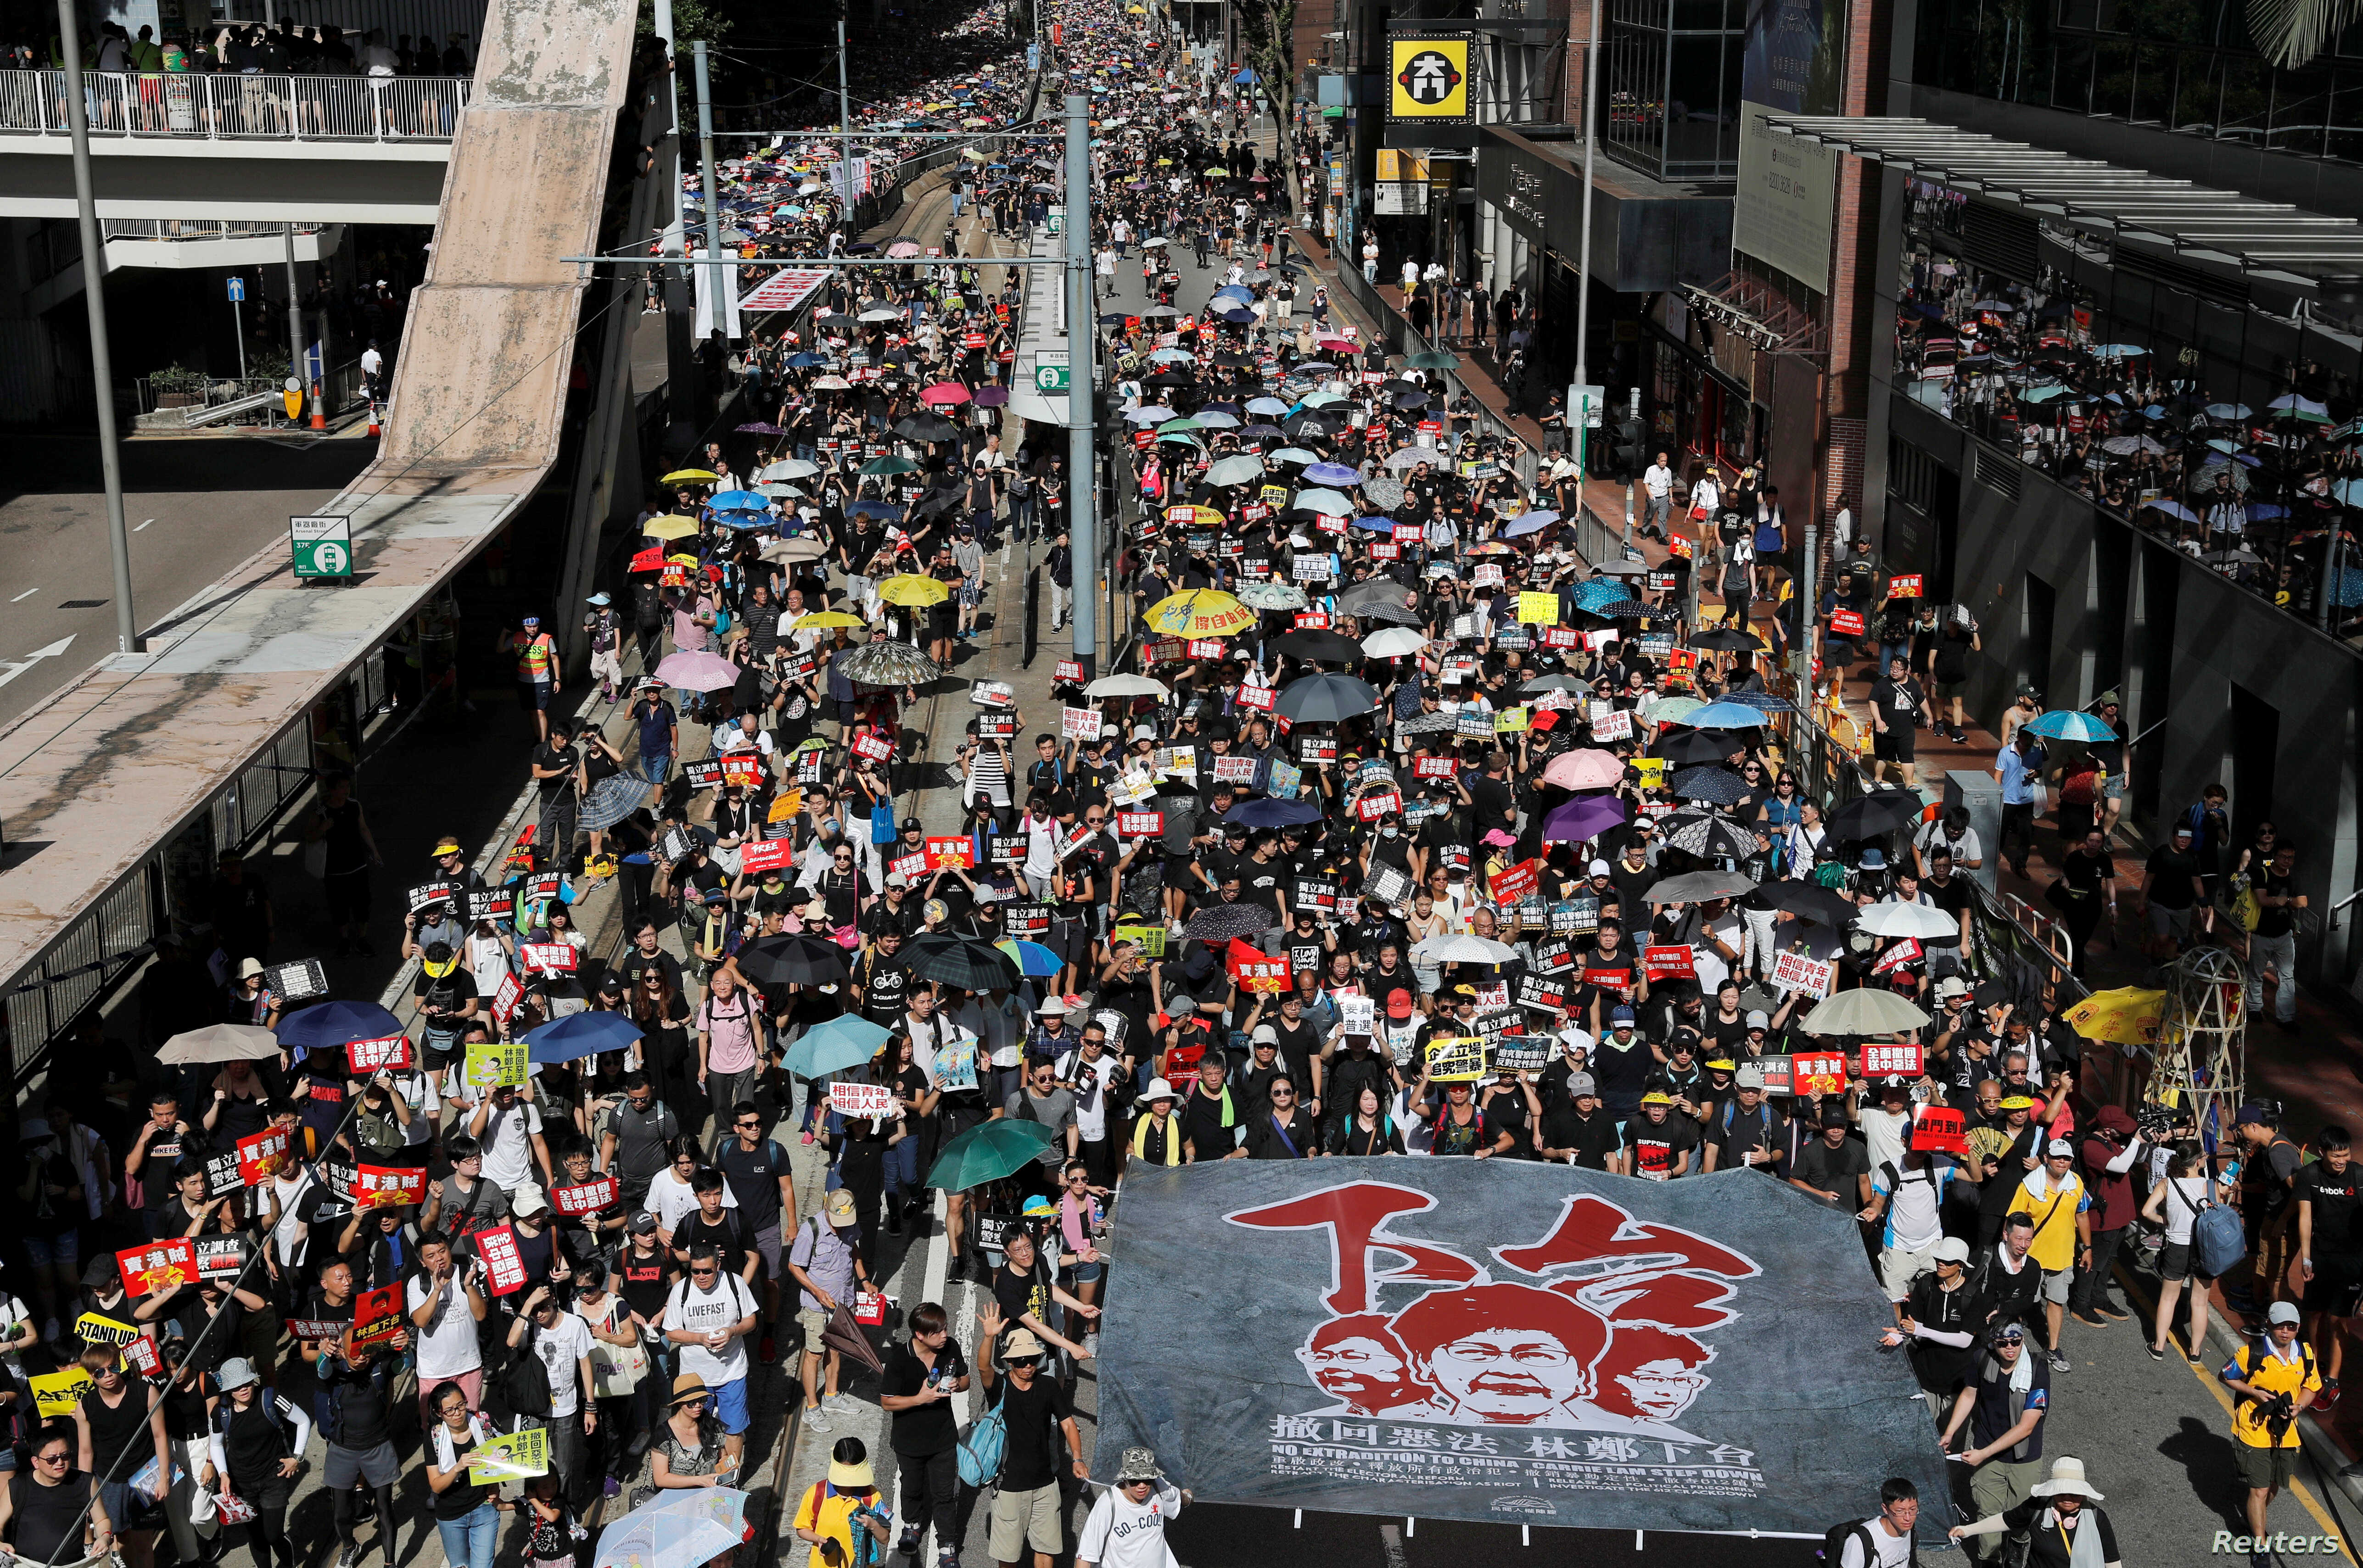 Anti-extradition bill protesters march during the anniversary of Hong Kong's handover to China in Hong Kong